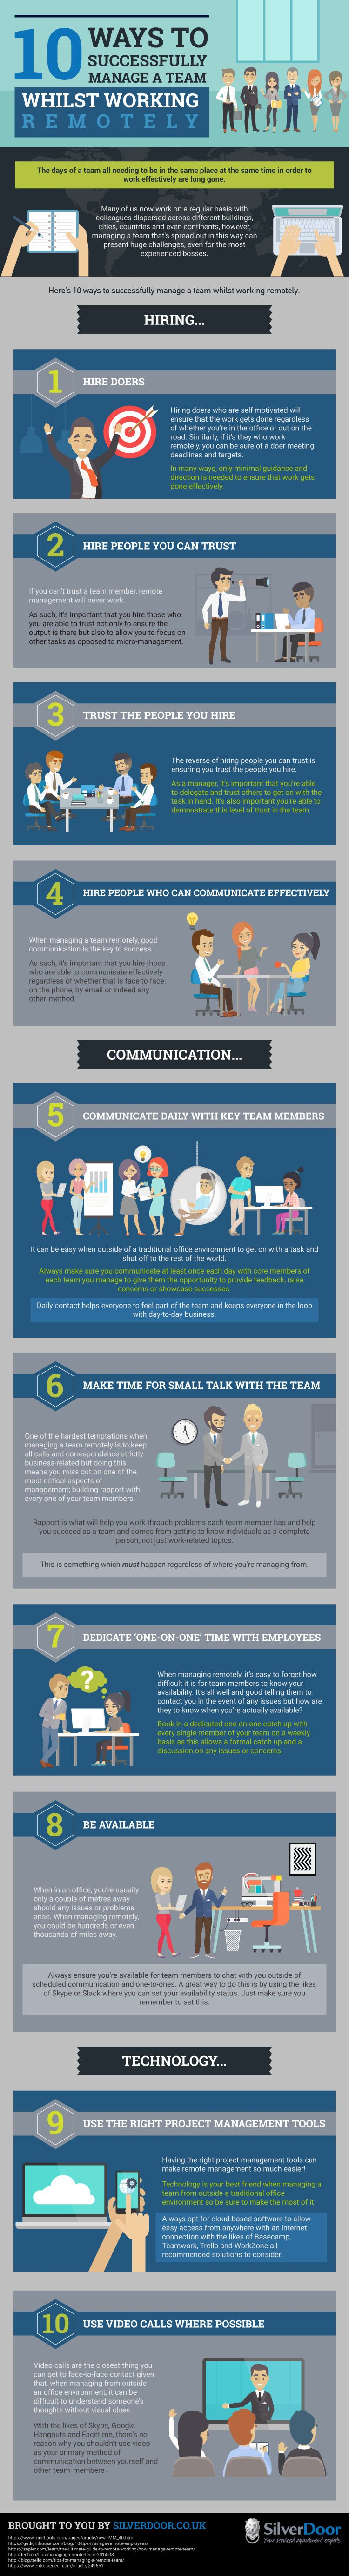 10 Ways To Successfully Manage A Team Whilst Working Remotely #infographic